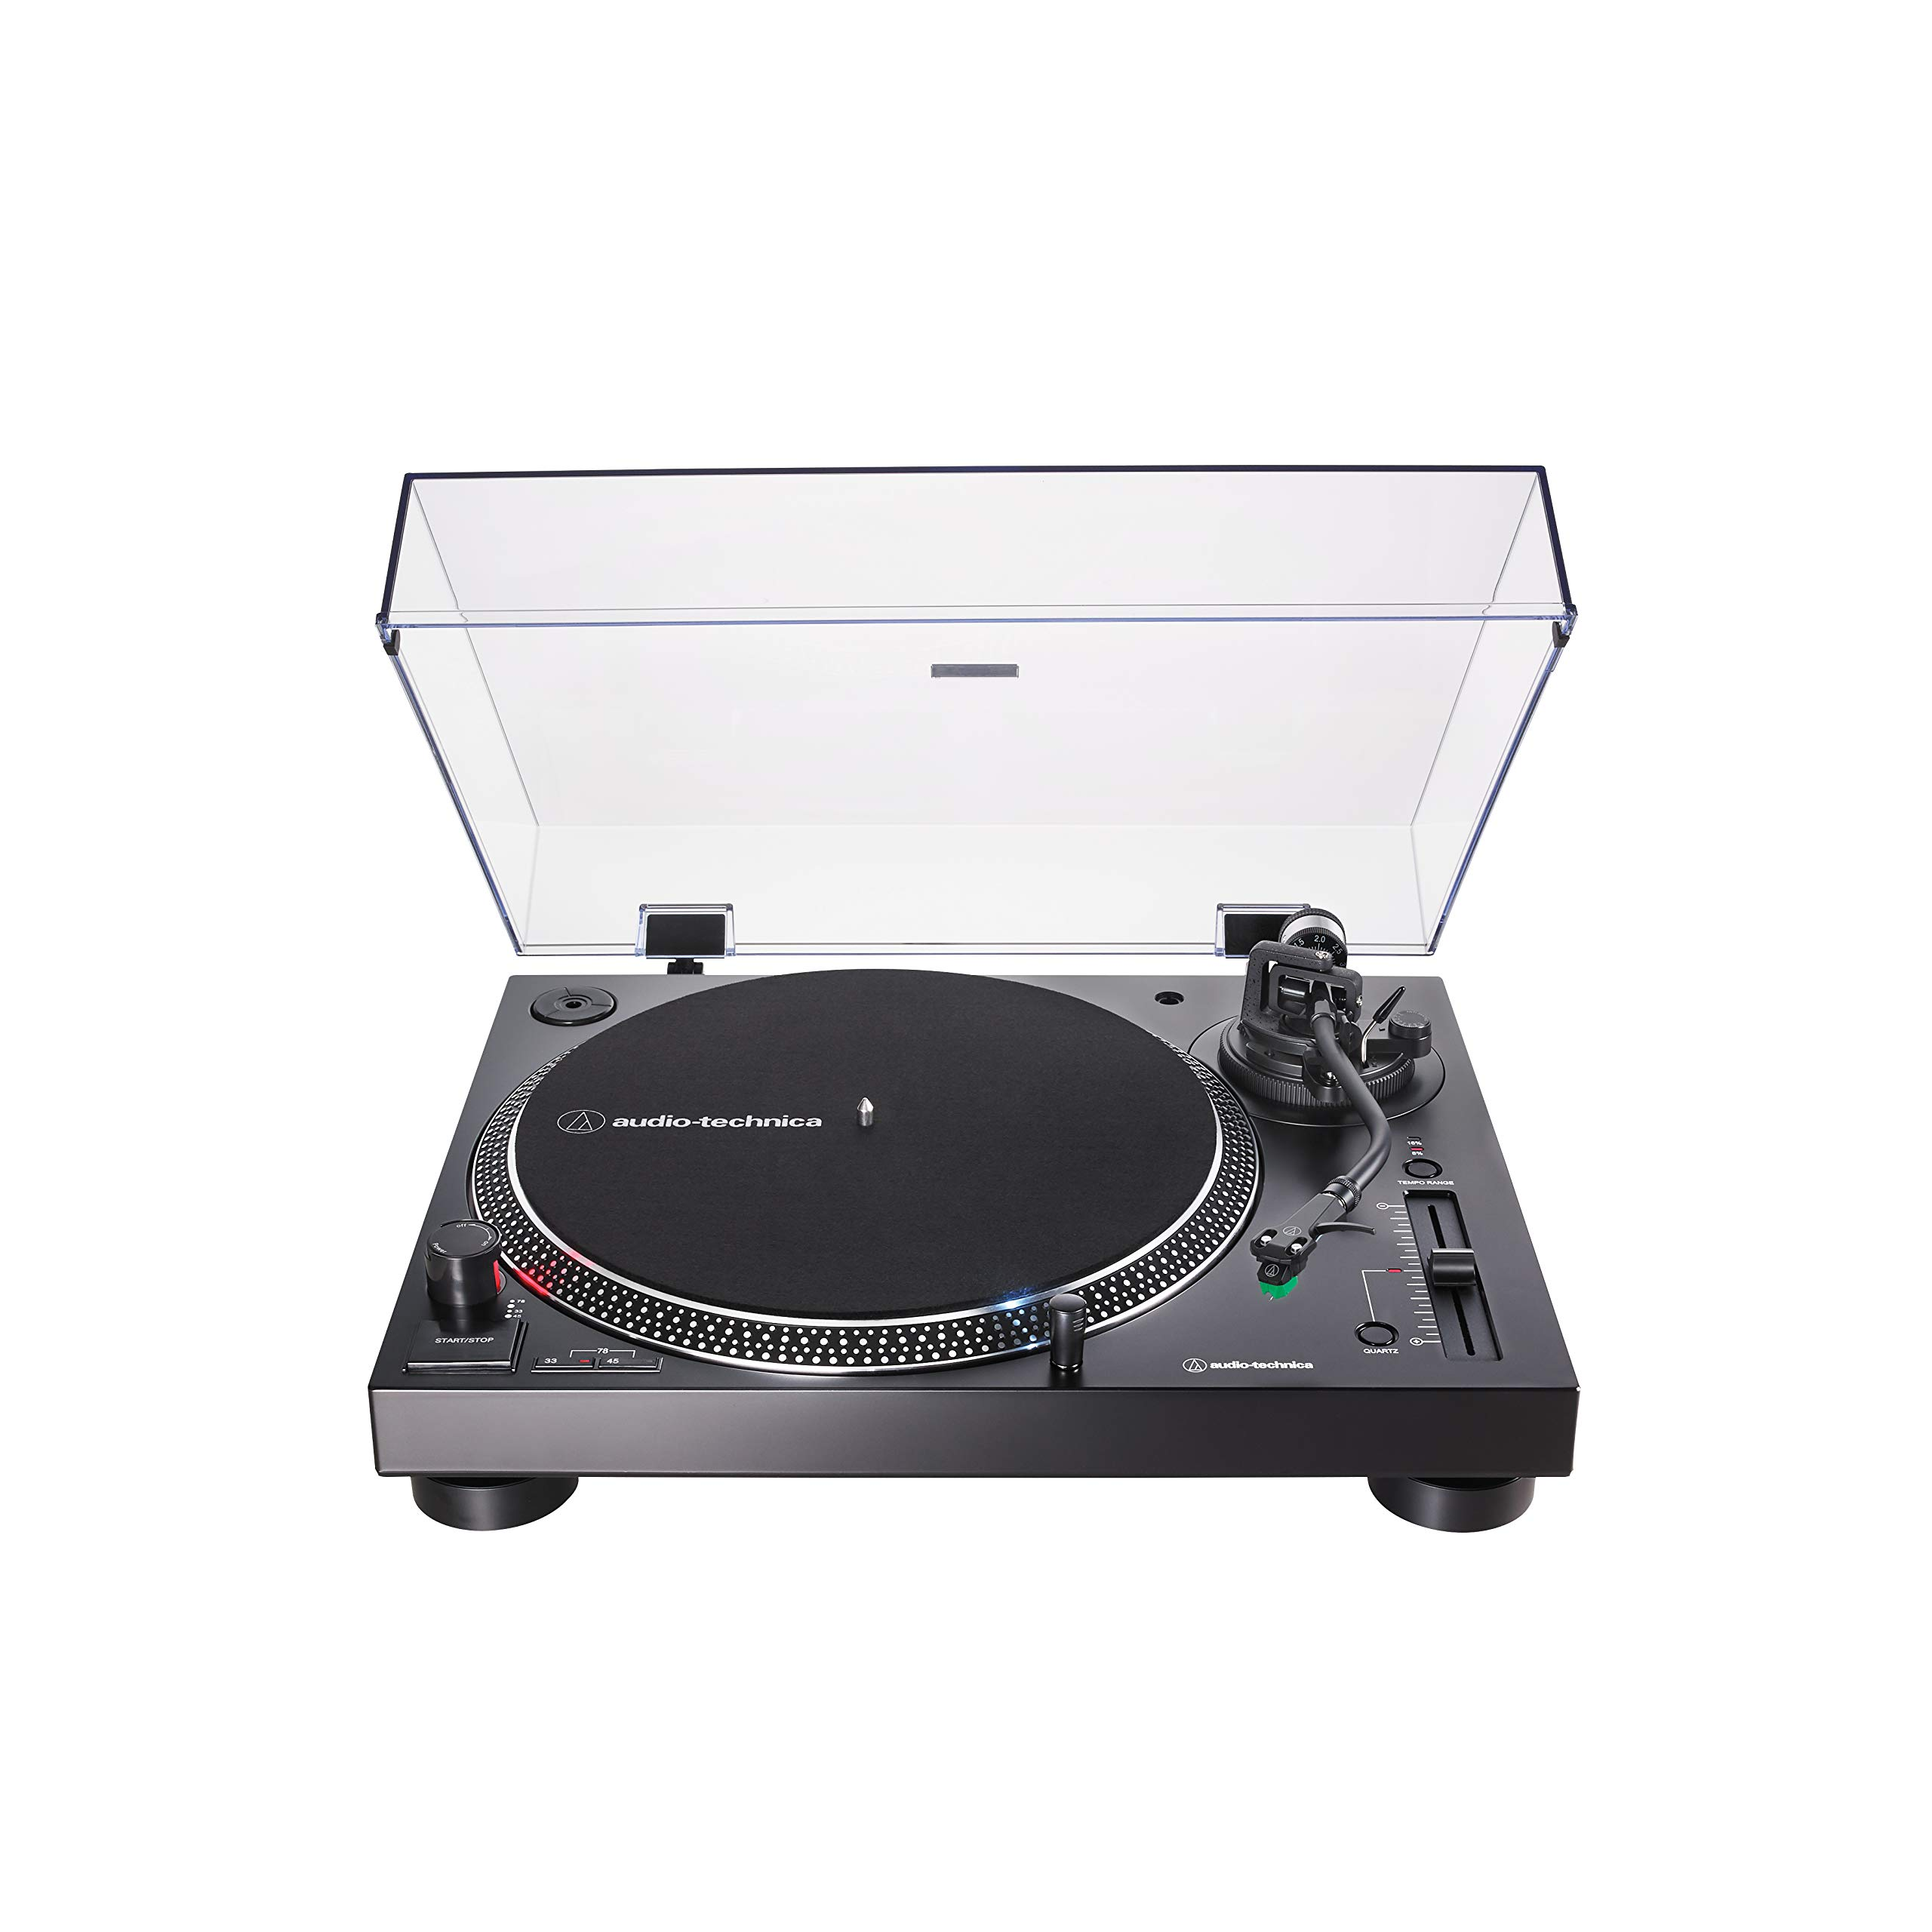 Audio-Technica AT-LP120XUSB Direct-Drive Turntable (Analog & USB), Black, Hi-Fidelity, Plays 33 -1/3, 45, and 78 RPM Records, Convert Vinyl to Digital, Anti-Skate Control, Variable Pitch Control by Audio-Technica